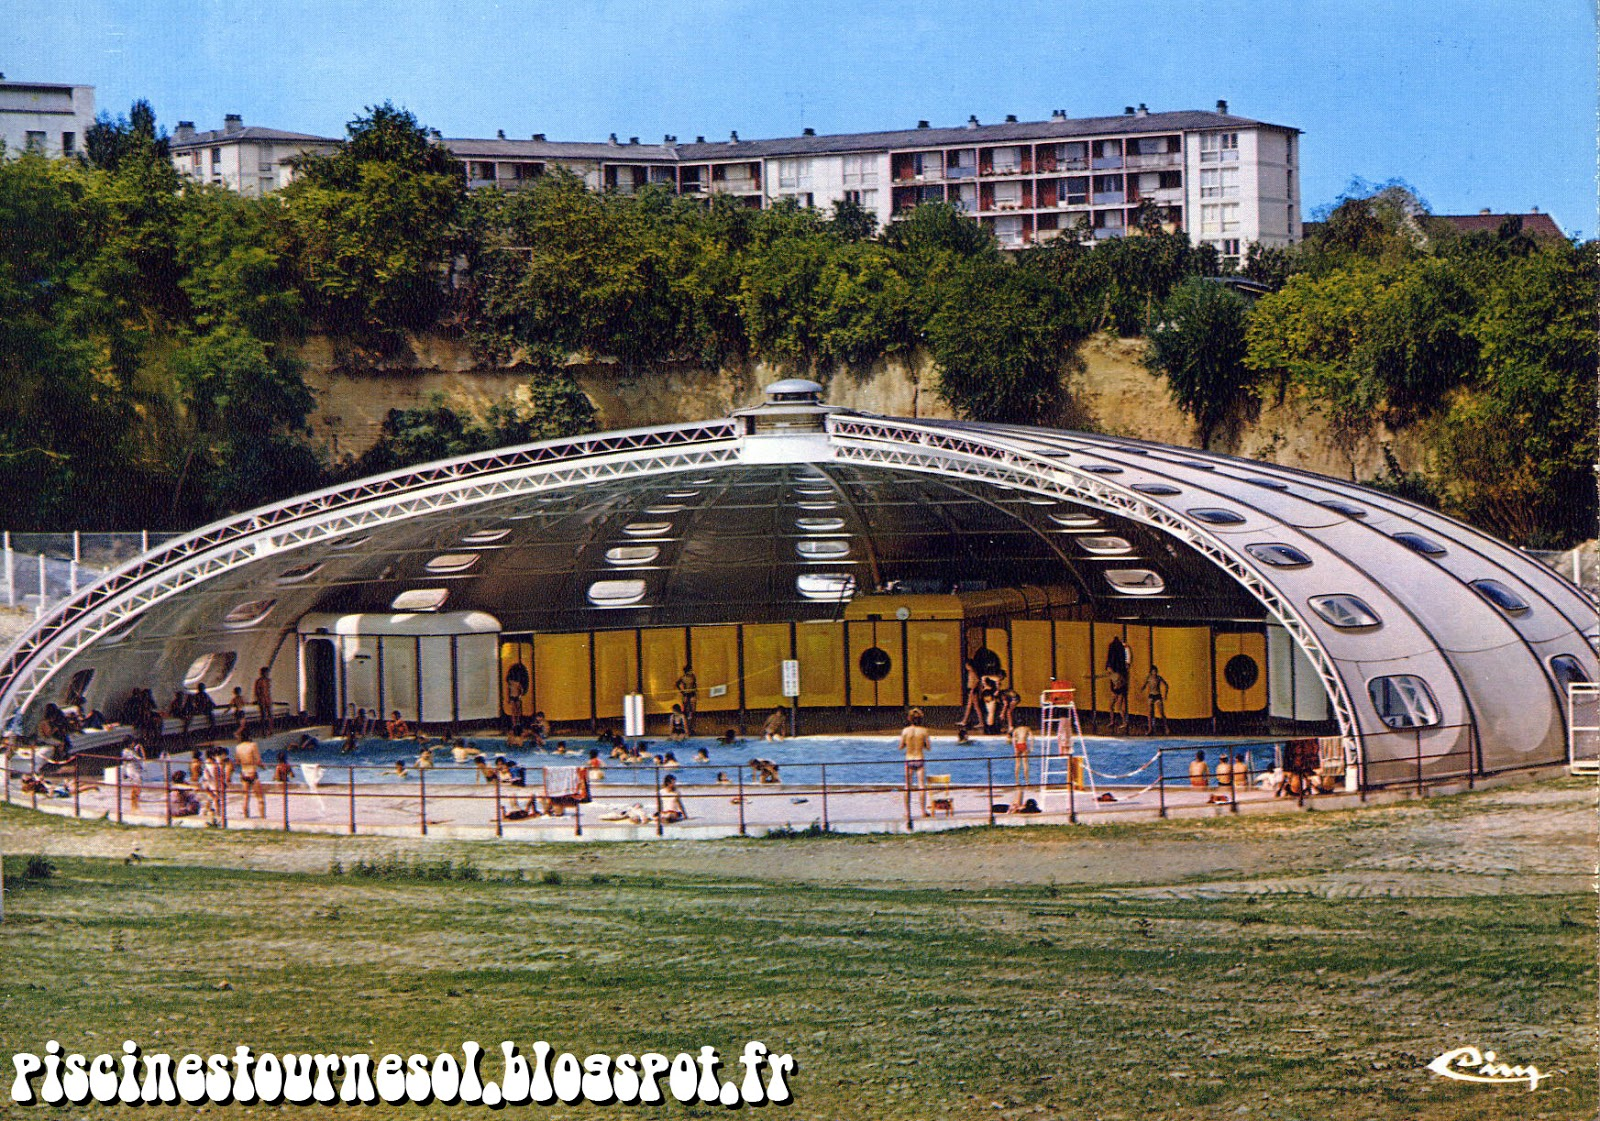 Piscines tournesol piscine tournesol saint florentin for Piscine tournesol